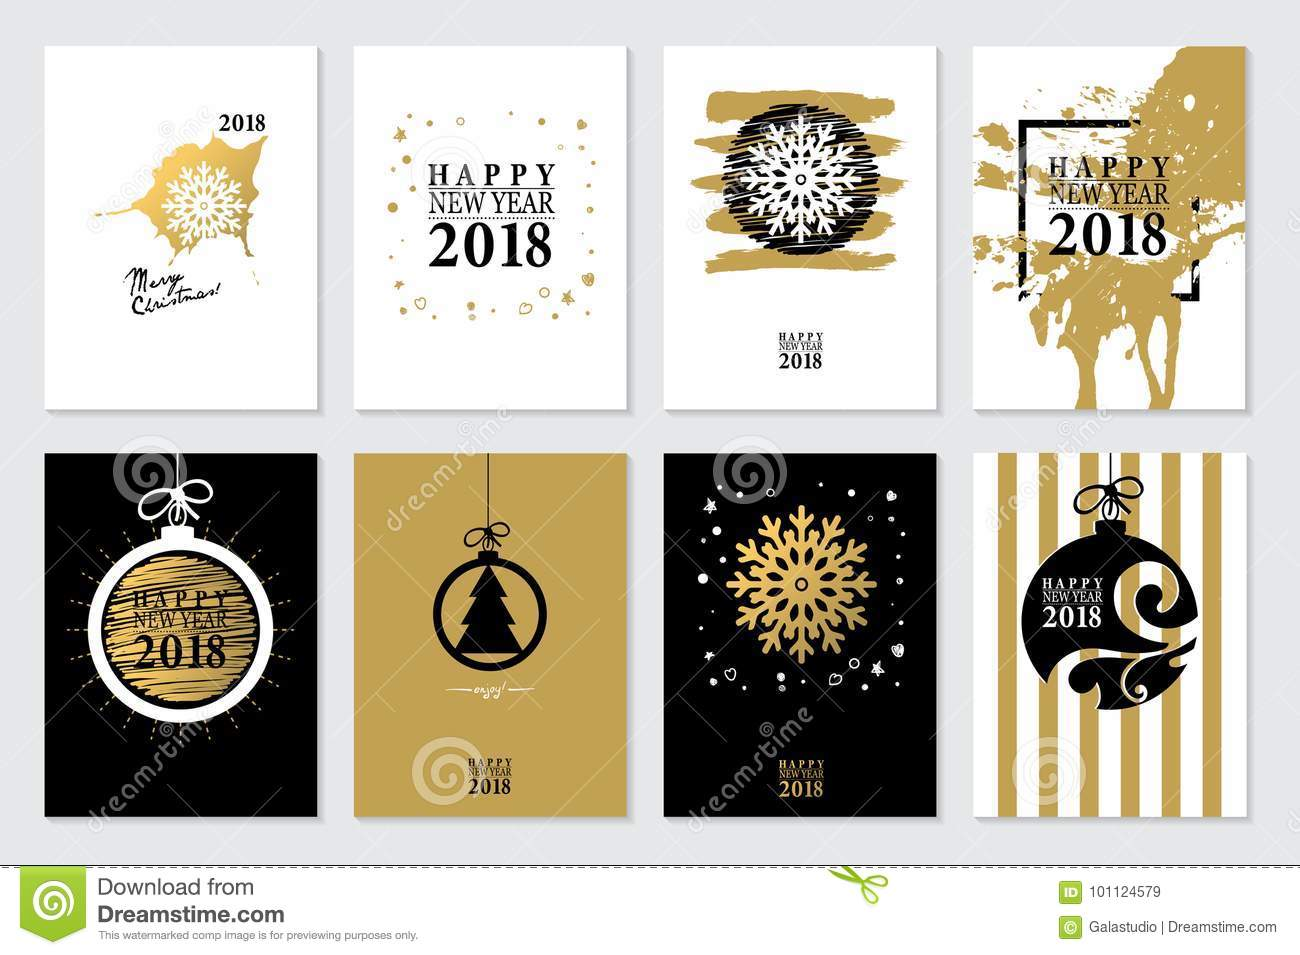 2018 set of happy new year card or background